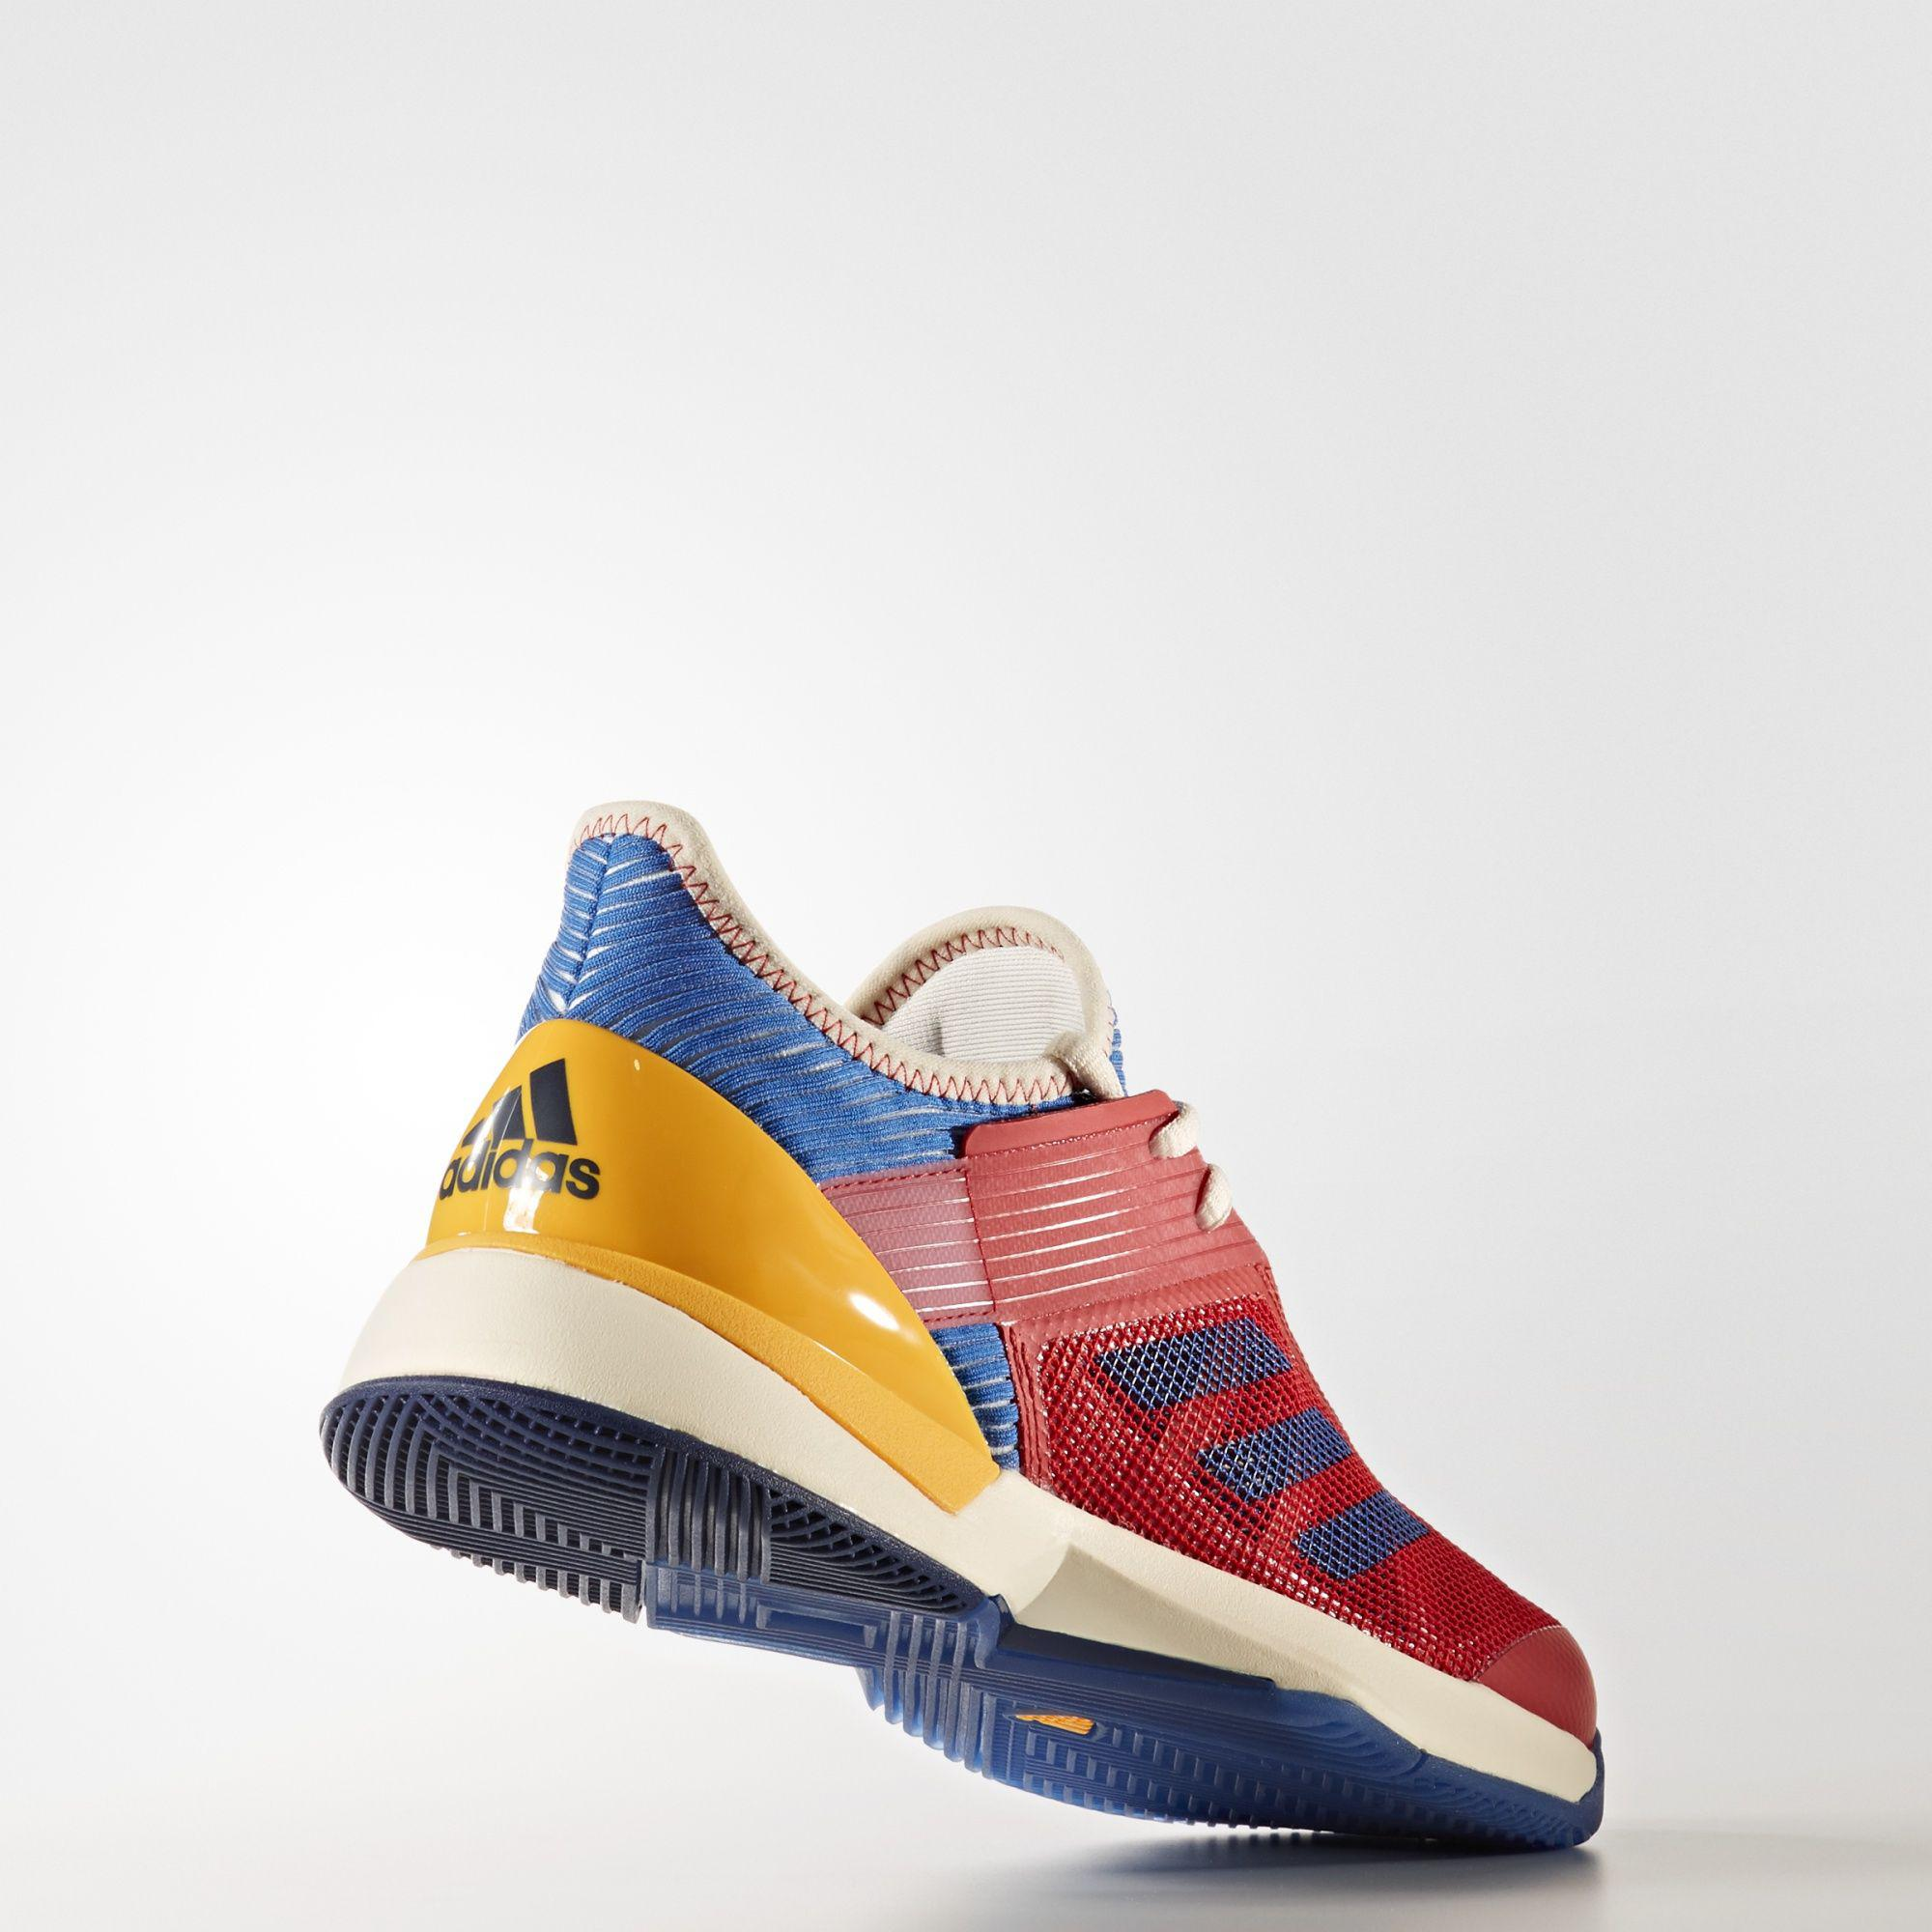 7f22127e37bf7 Adidas Womens Adizero Ubersonic 3.0 Pharrell Williams Tennis Shoes -  Multi-Colour